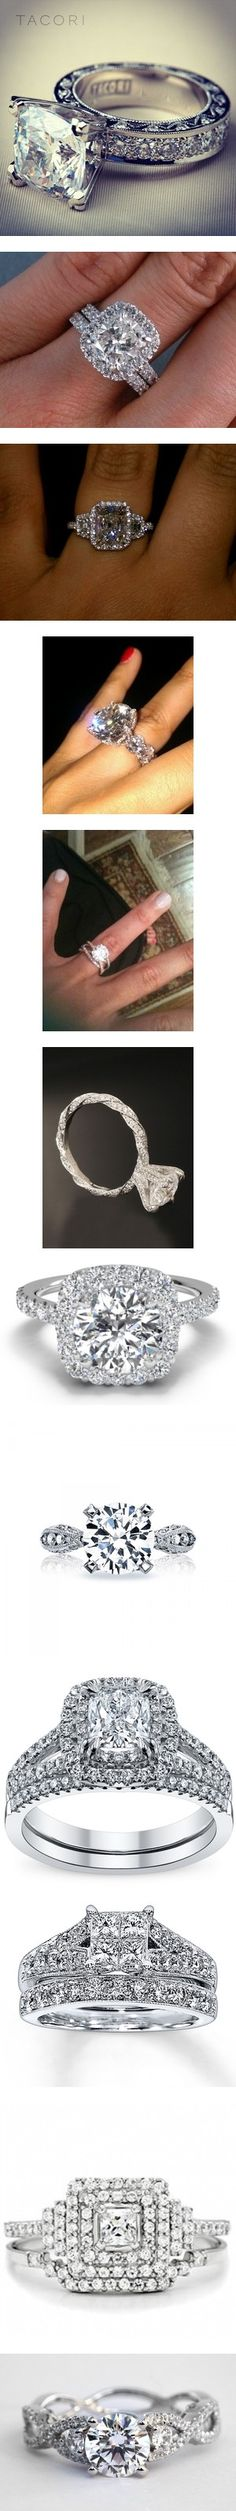 """""""Wedding Rings! (my DREAM wedding rings)"""" by callico32 on Polyvore"""